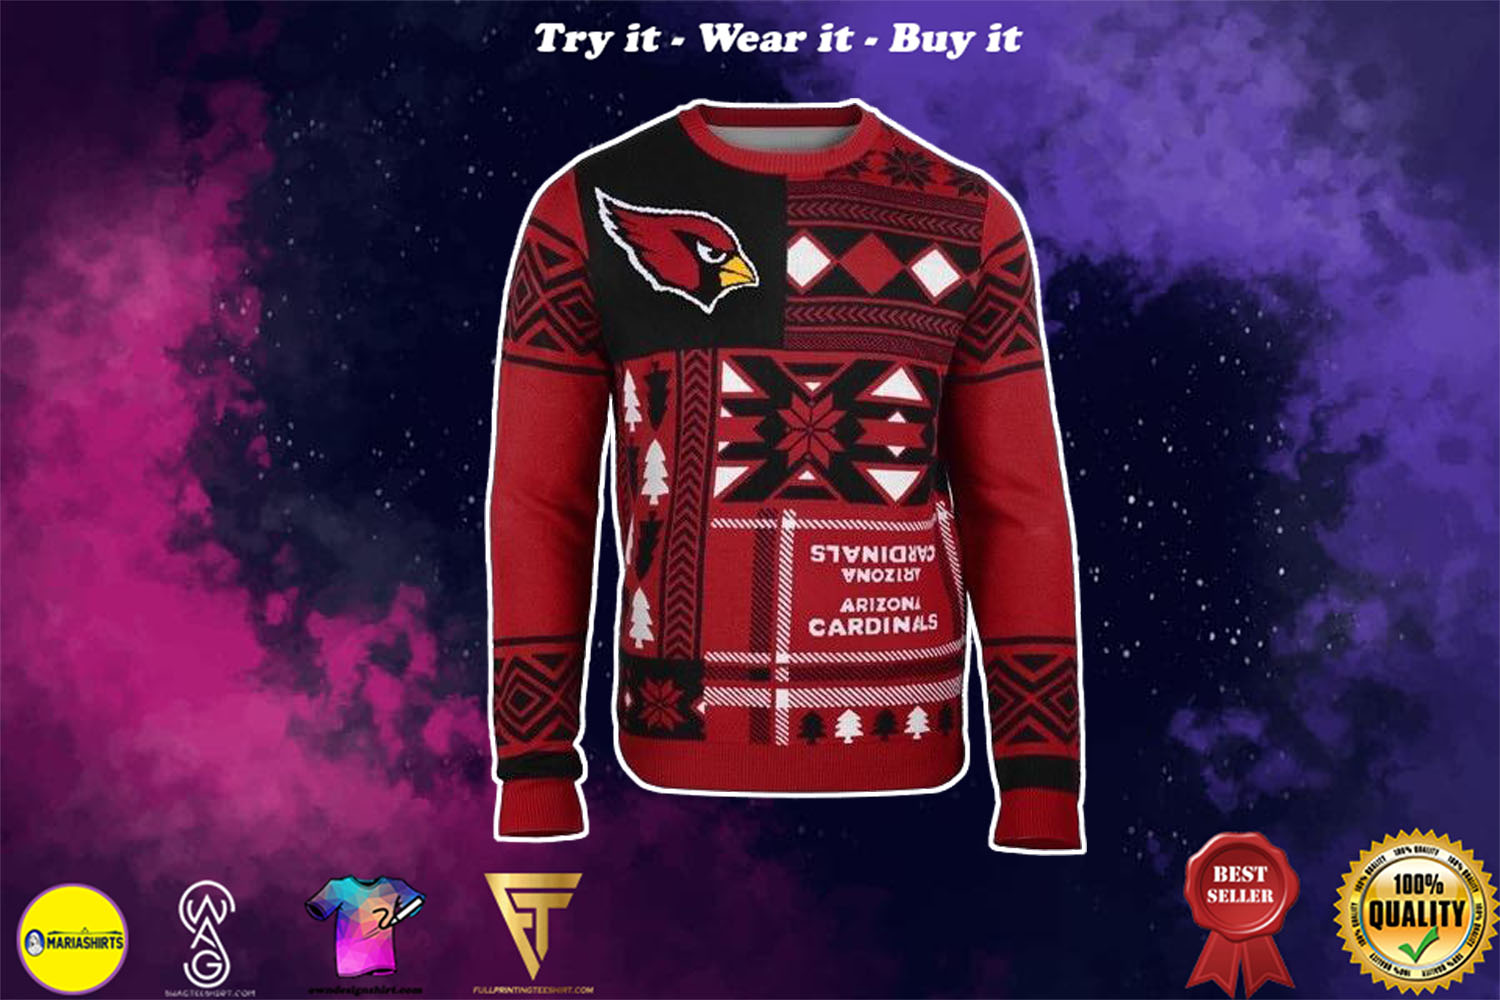 [special edition] arizona cardinals patches ugly christmas sweater - maria